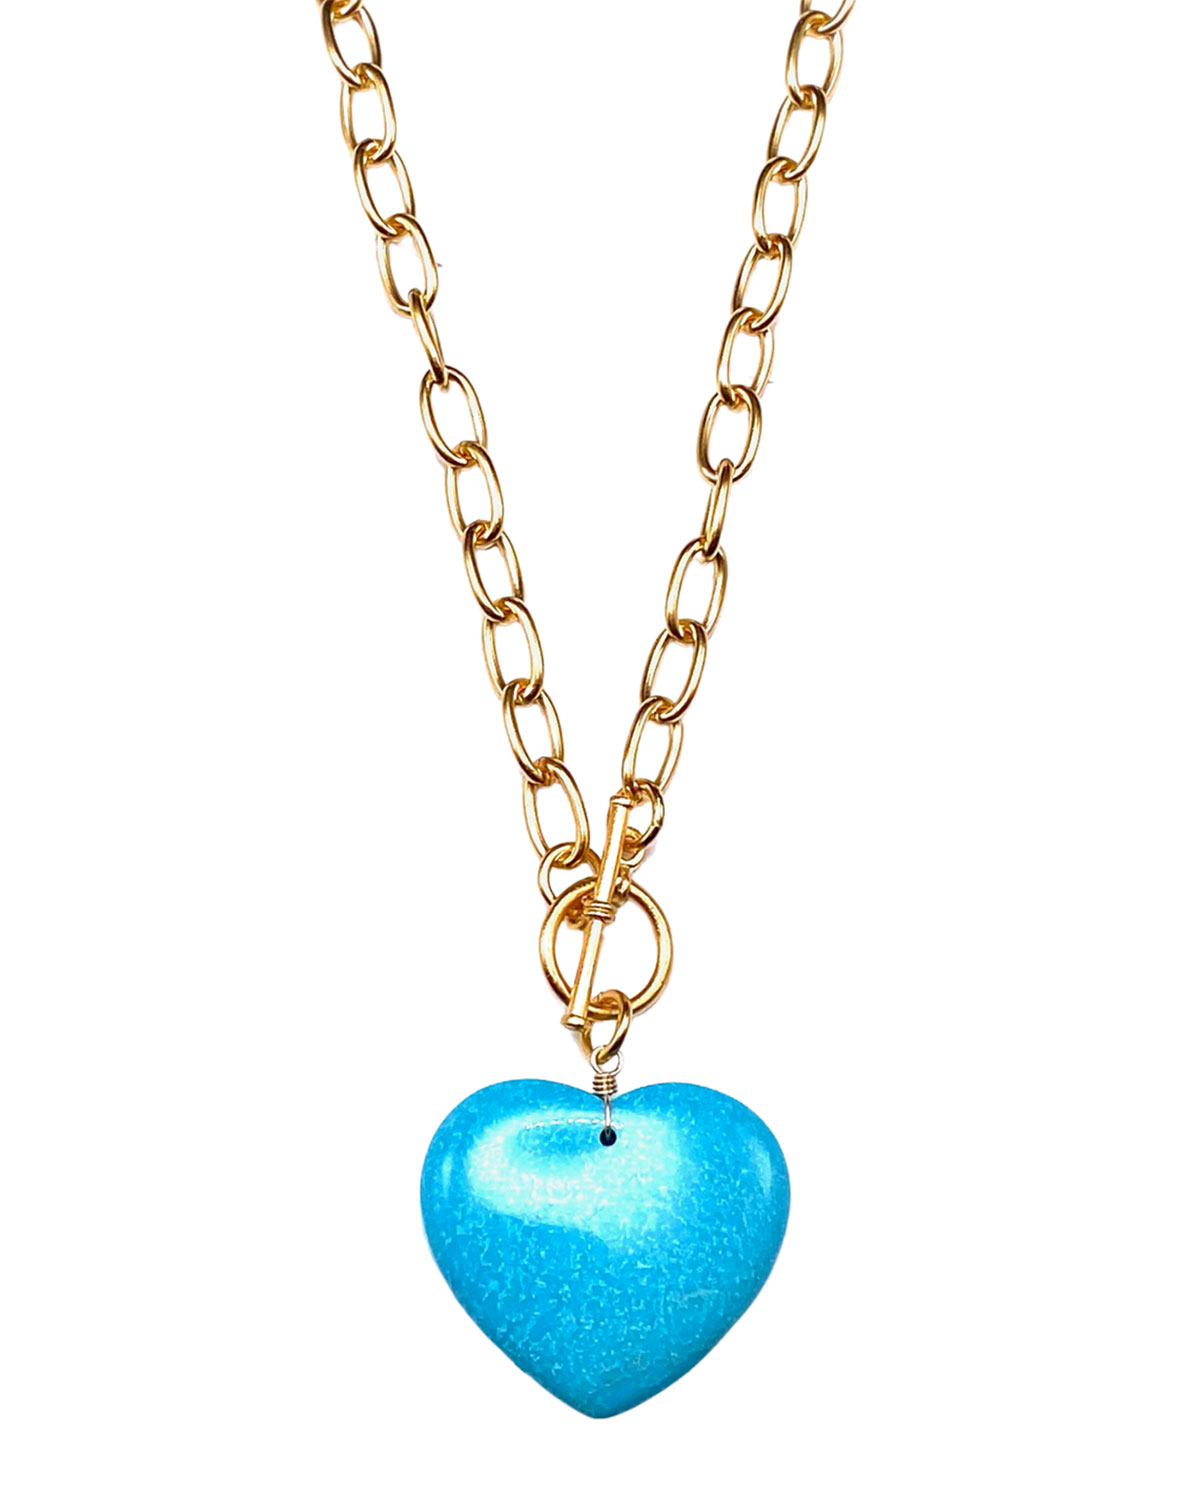 Turquoise Heart on Gold Chain Necklace